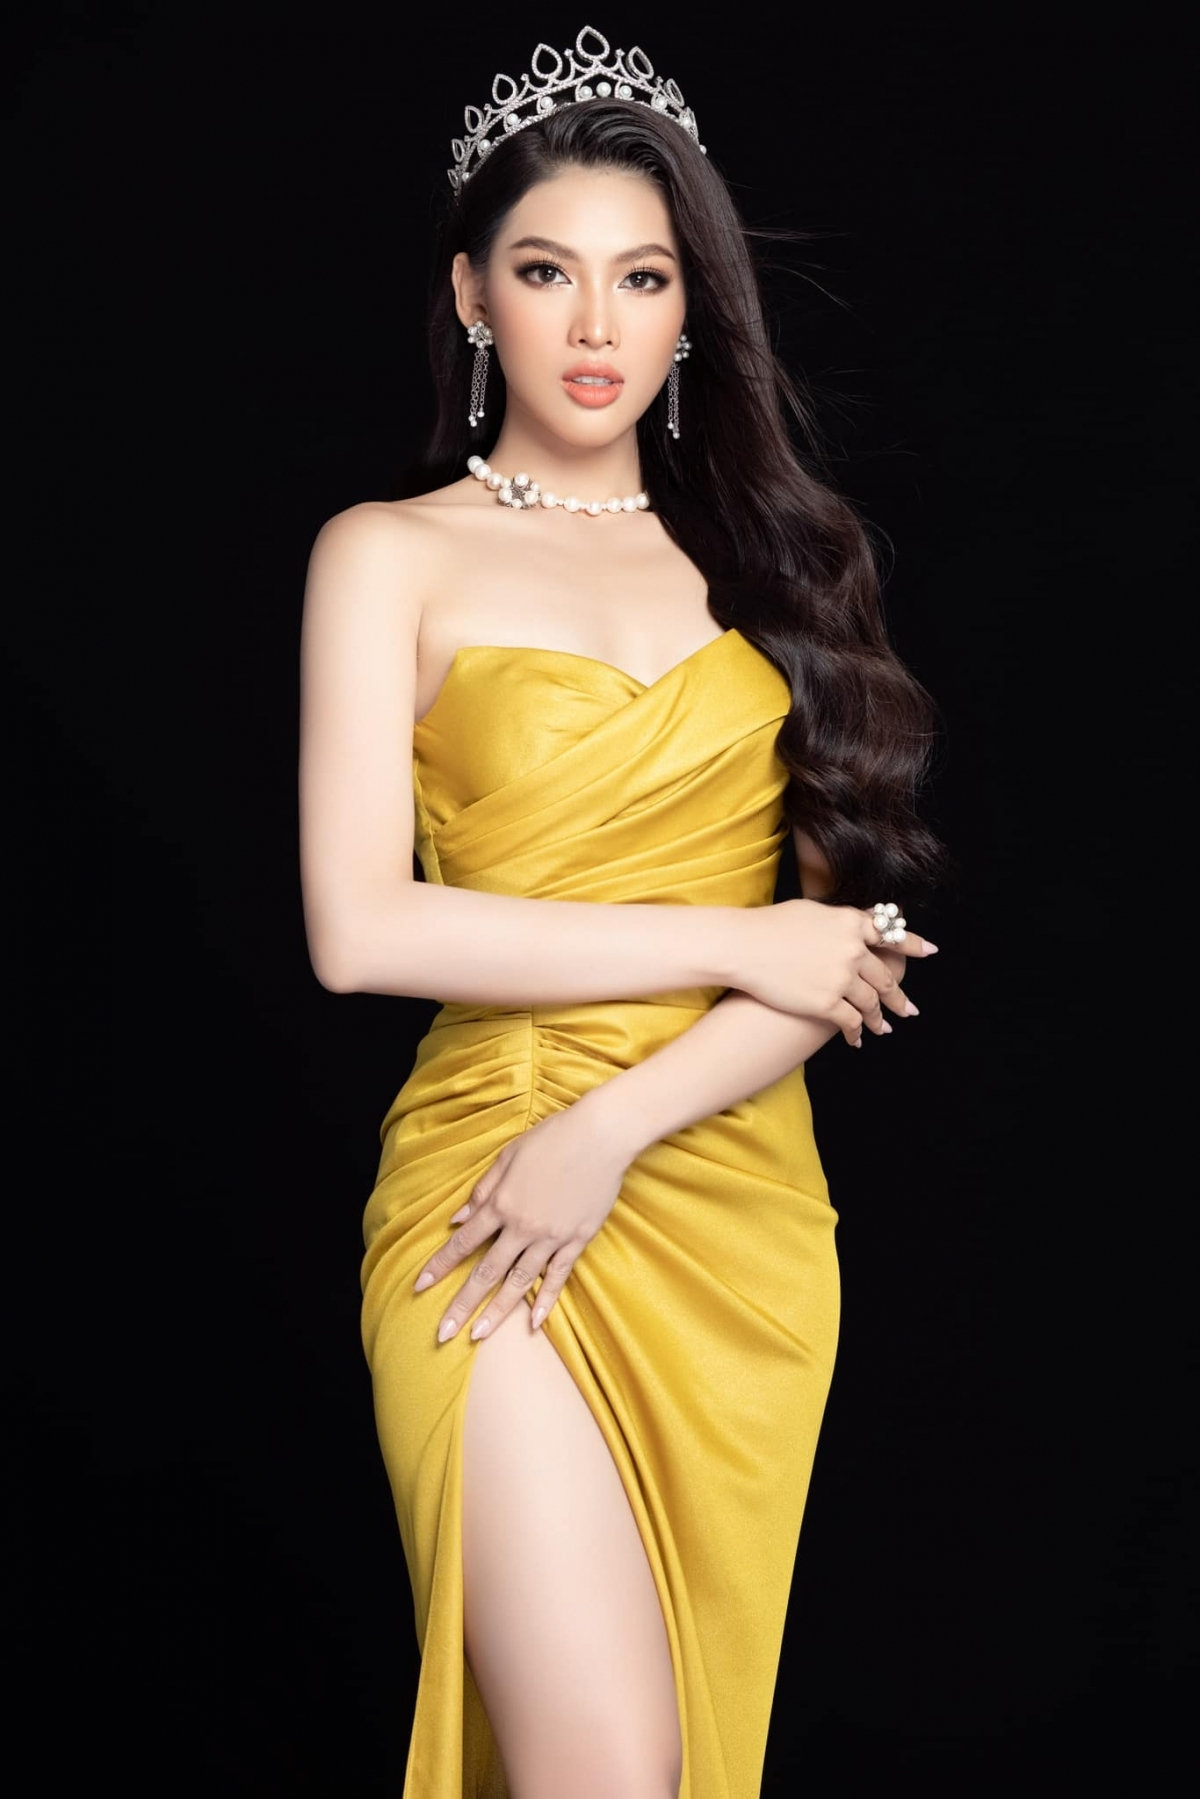 Ngoc Thao, second runner-up at Miss Vietnam 2020, willcompete at Miss Grand International